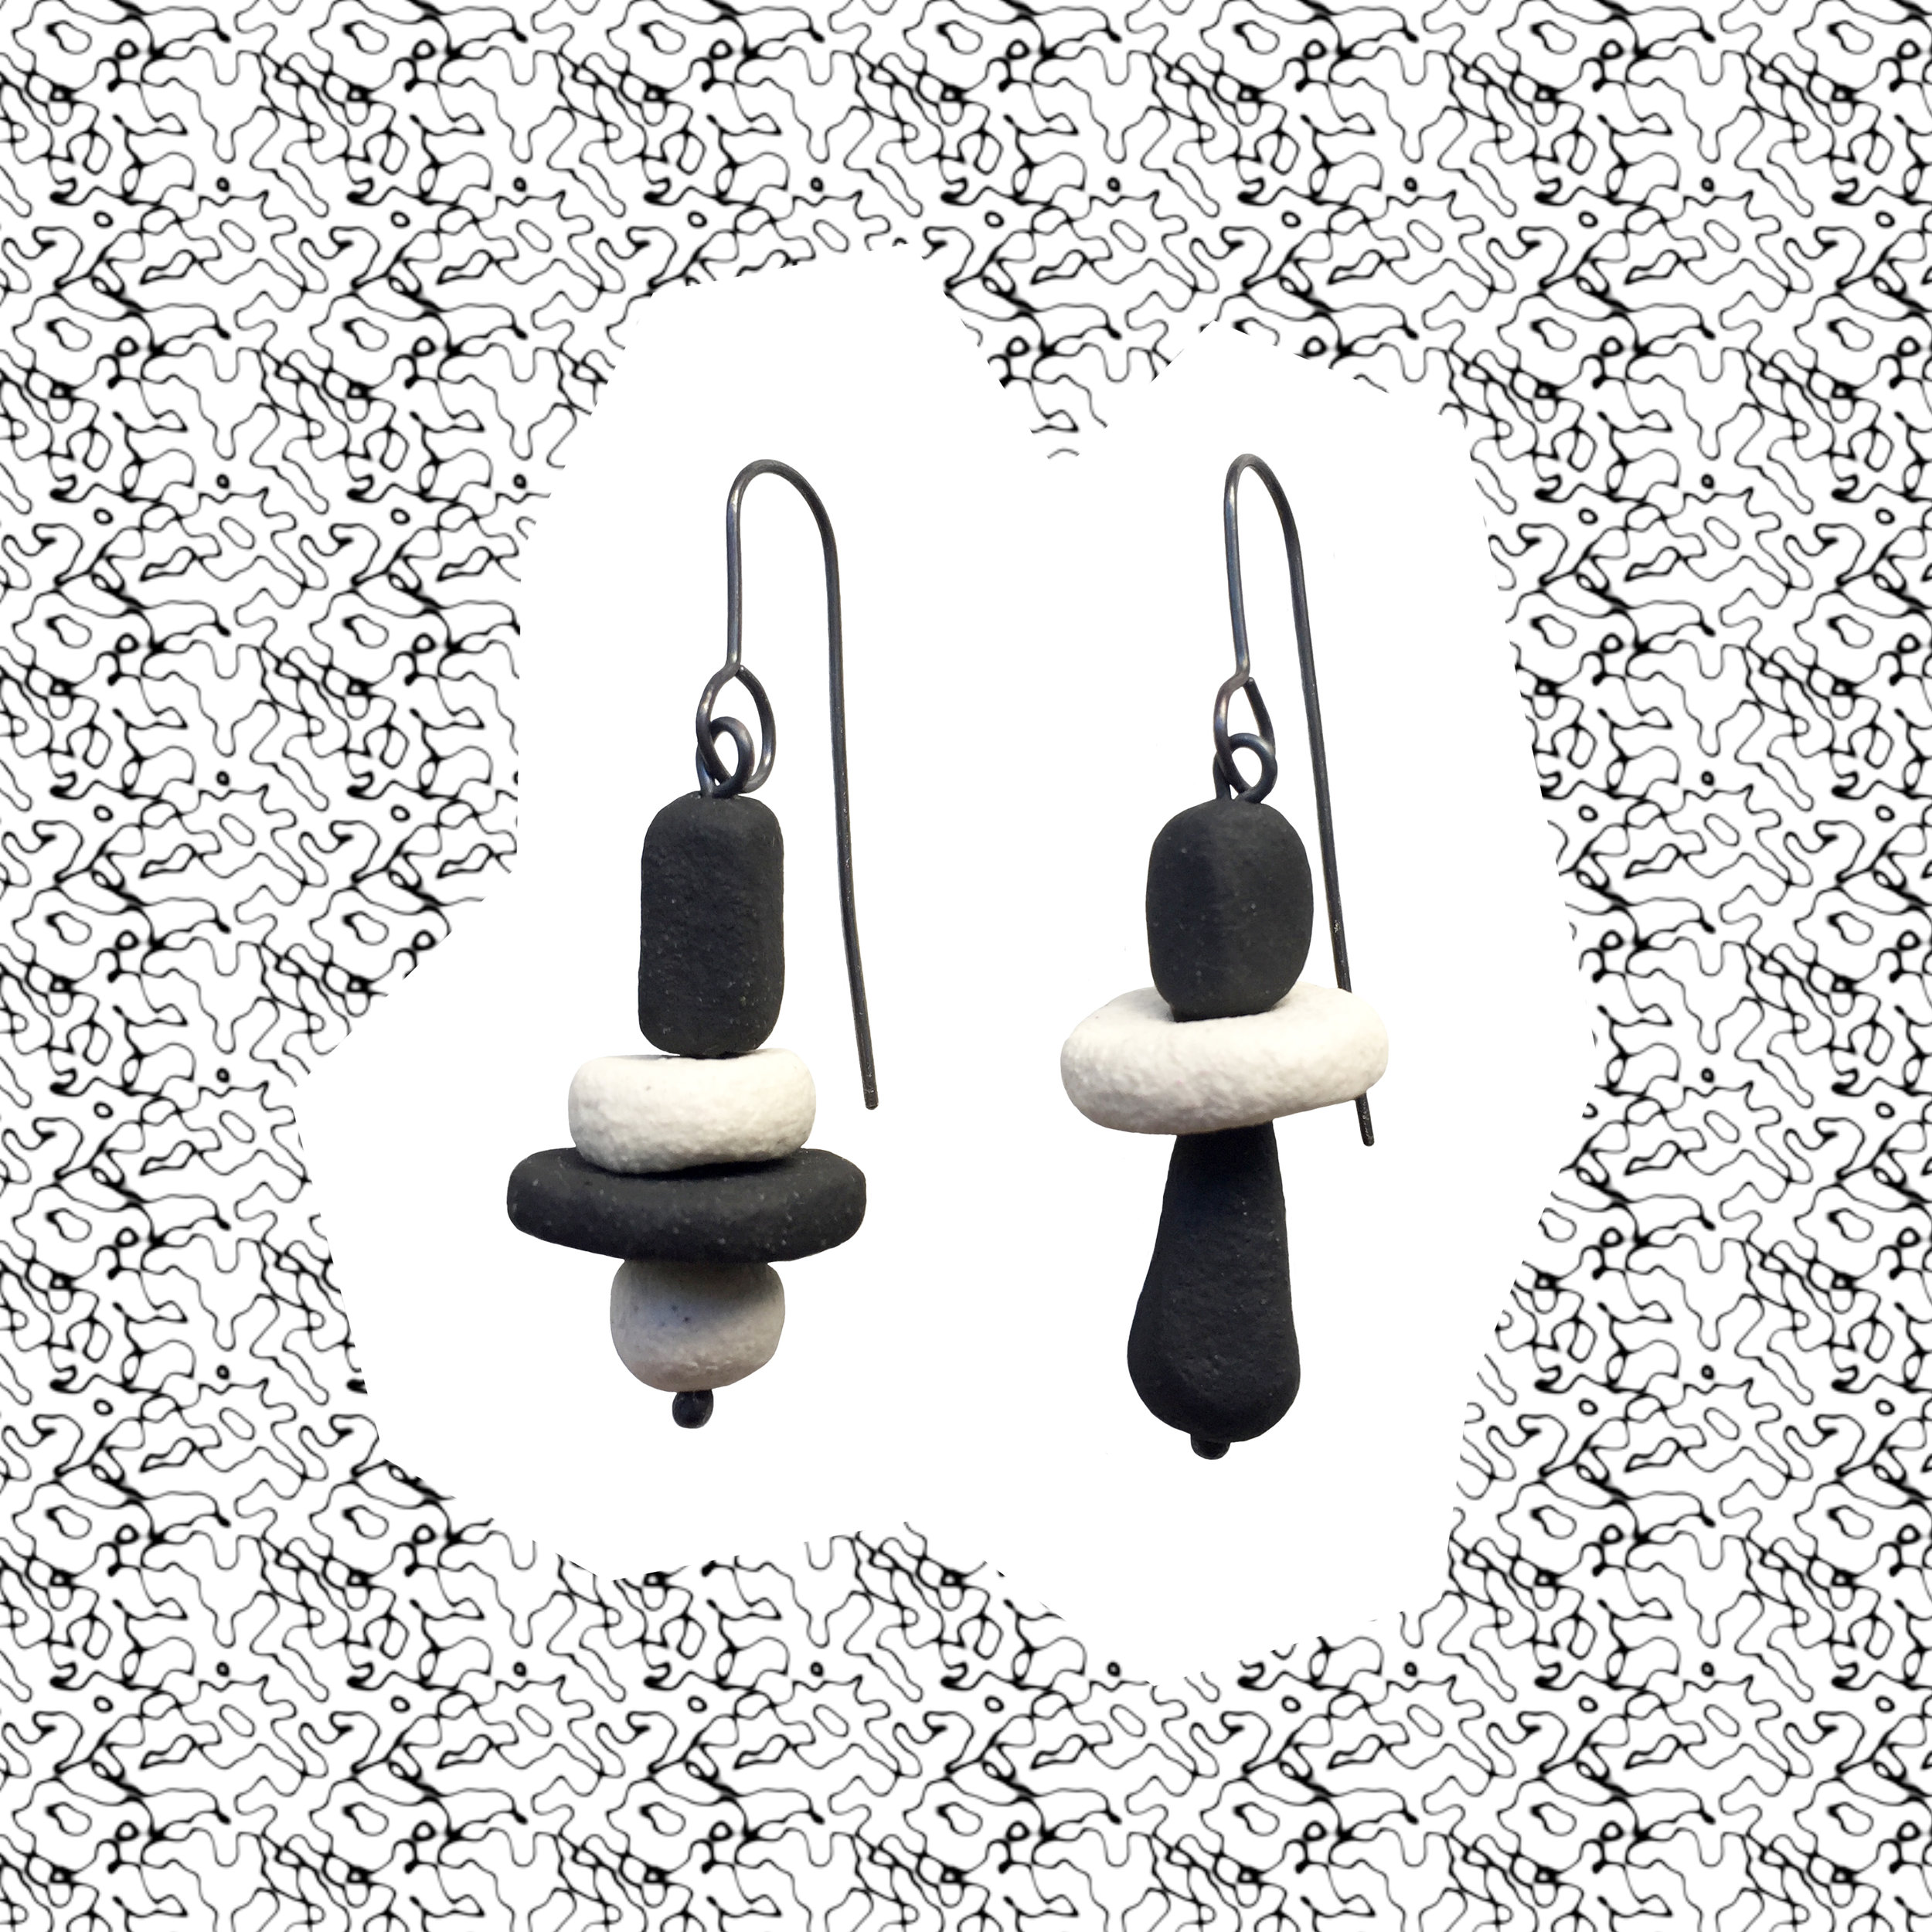 #19, ceramic beads (clay, matte black underglaze), oxidised sterling silver, 70mm x 20mm